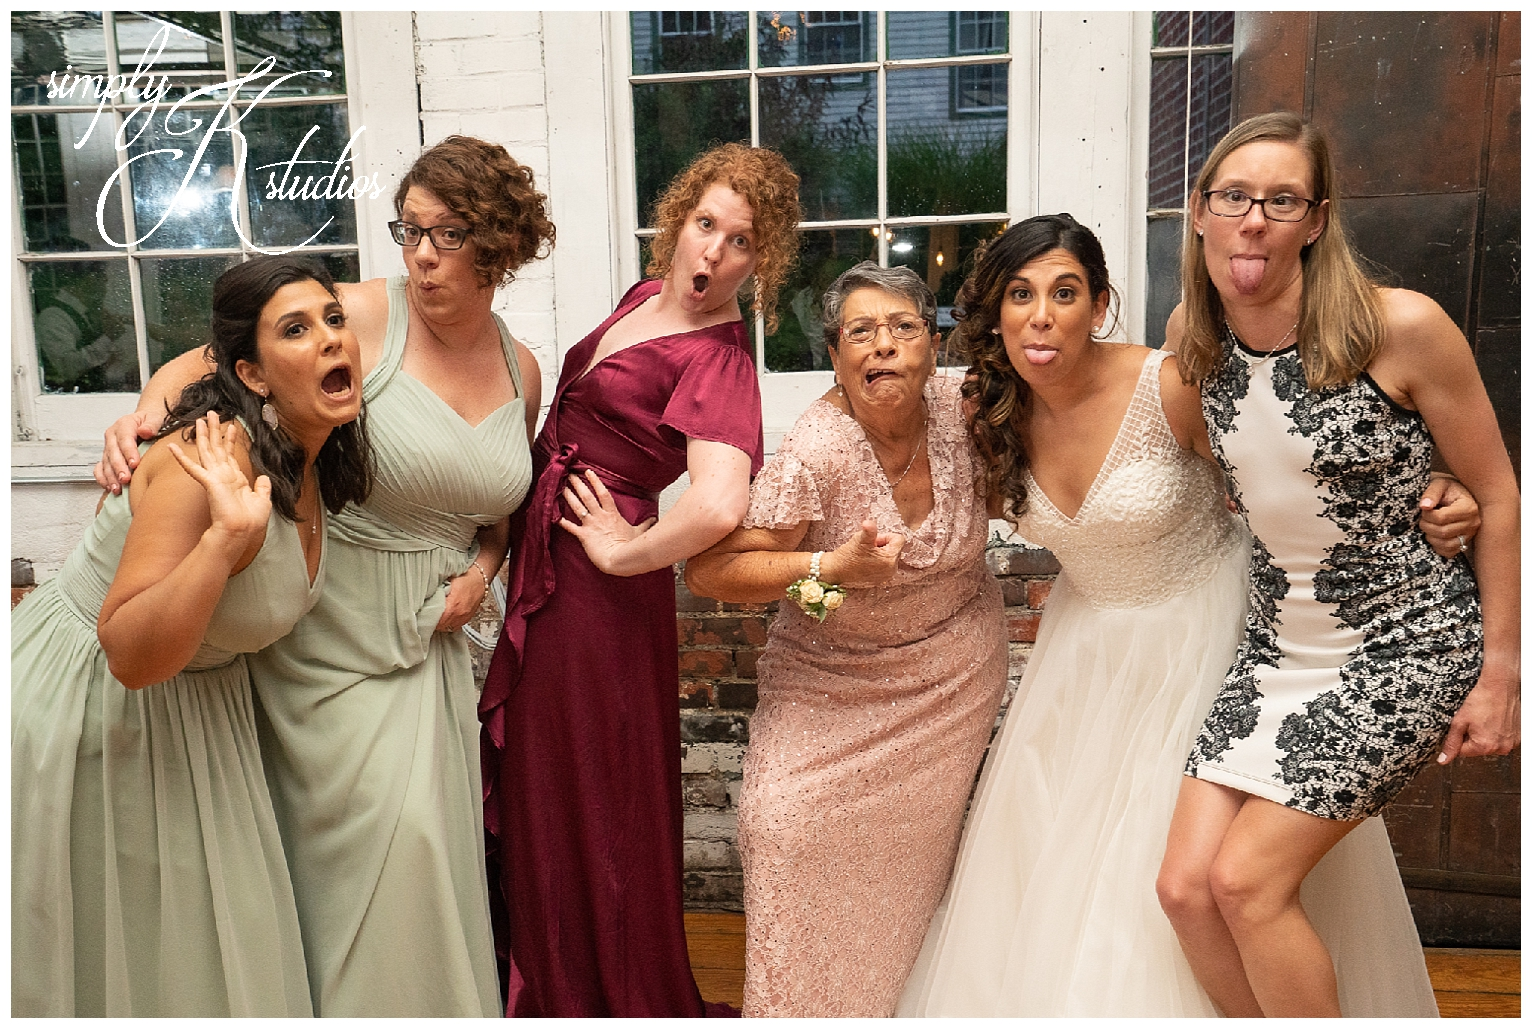 Candid Photography at a Wedding.jpg